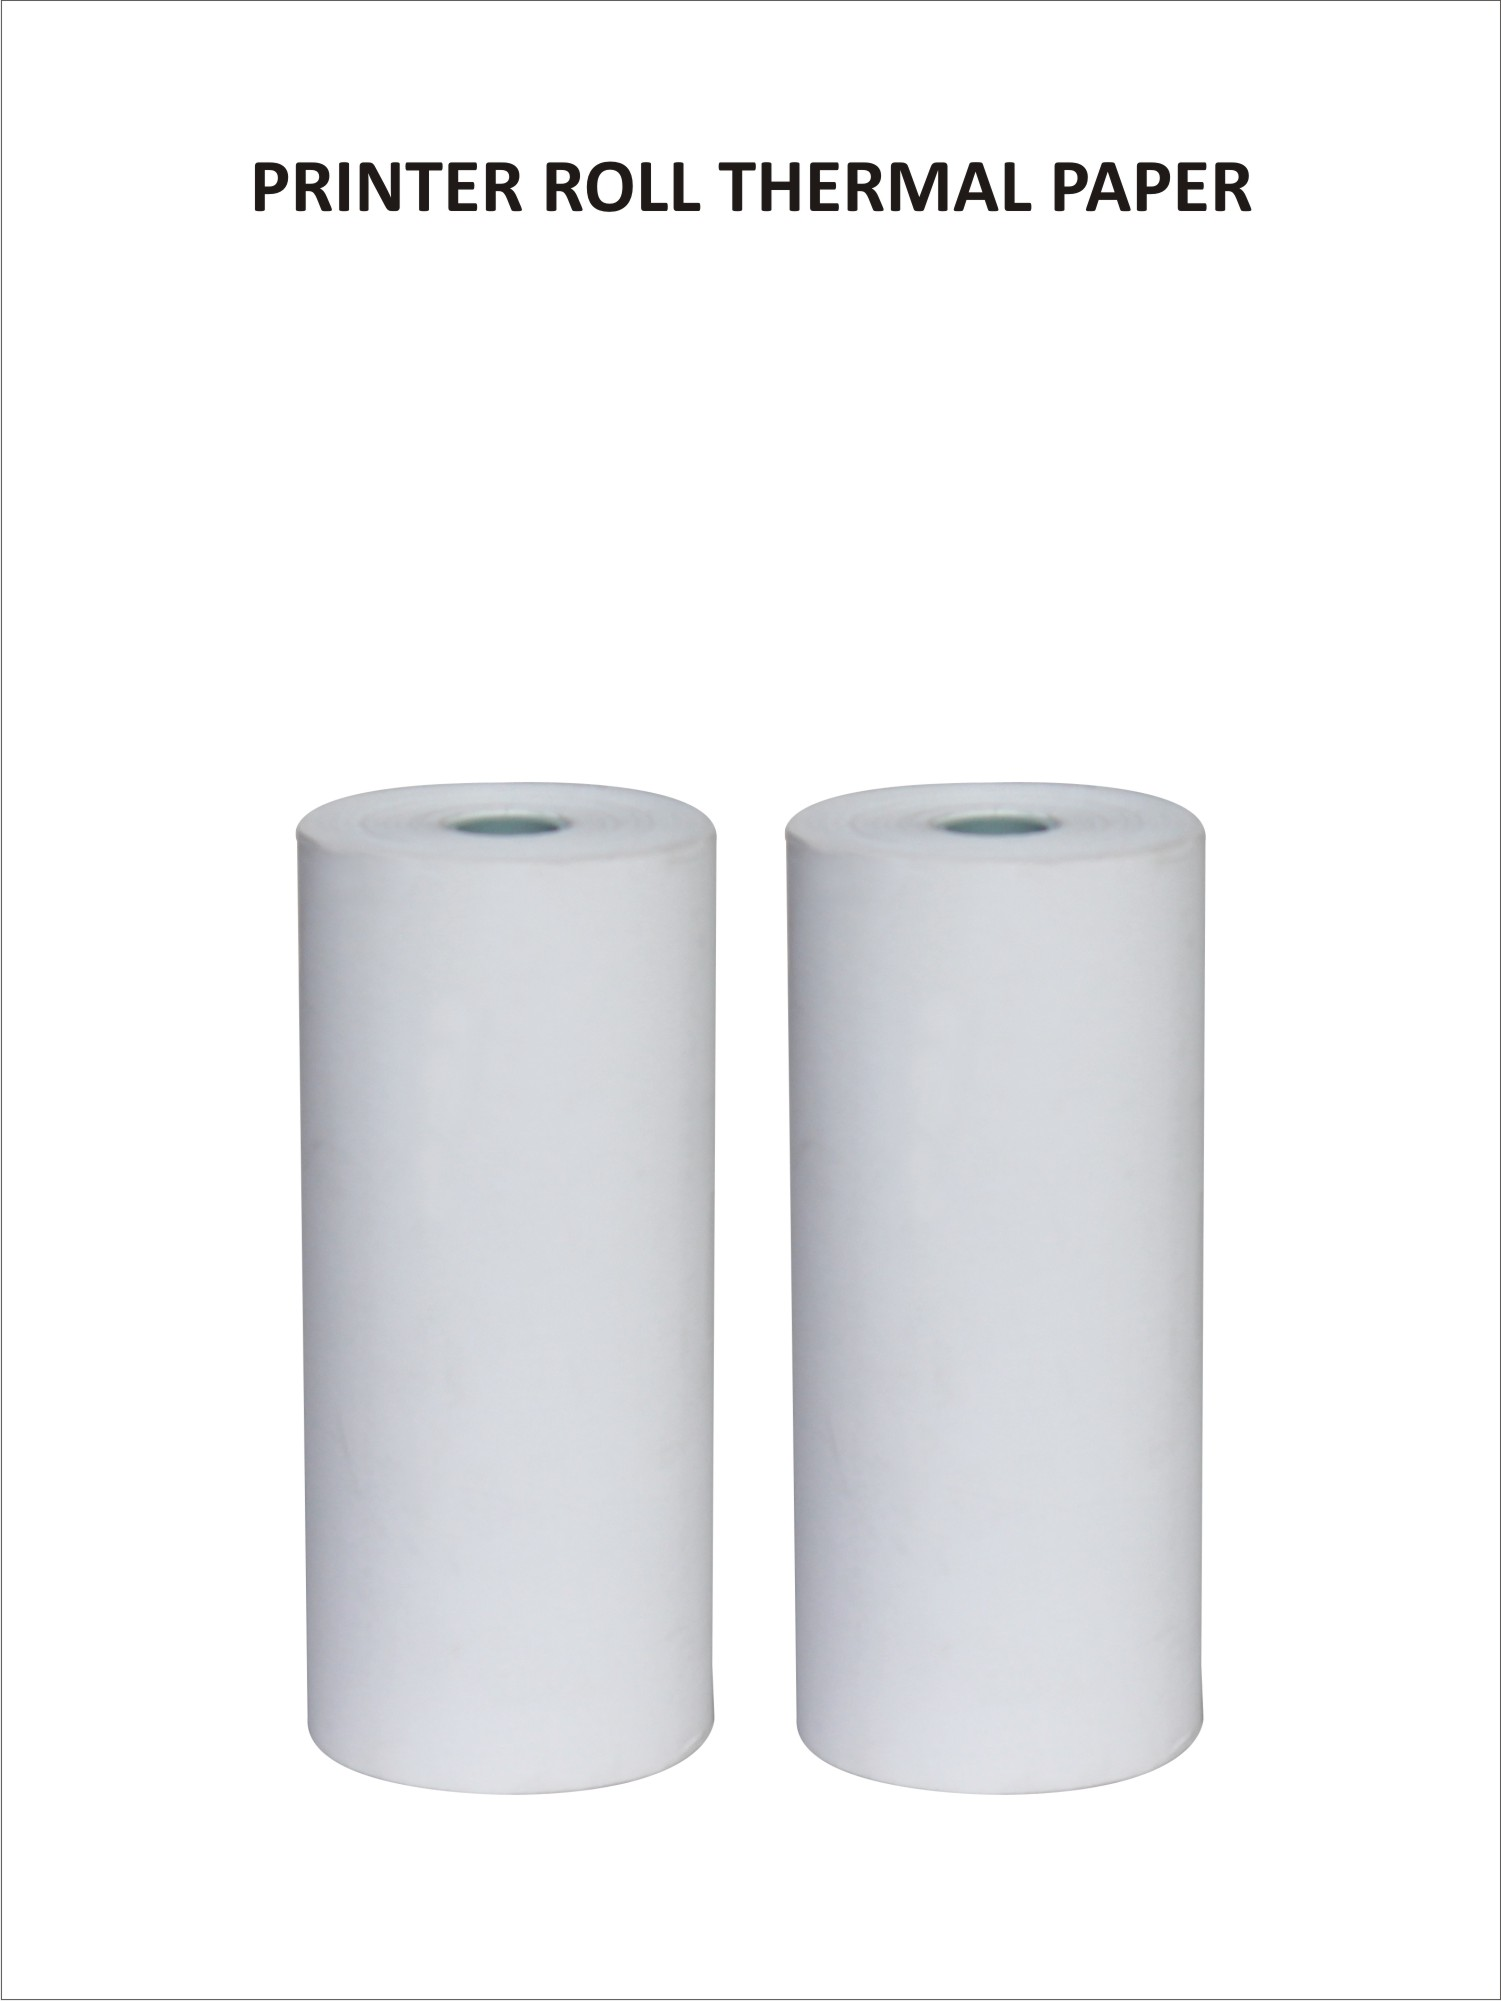 Scoring Printer Thermal Roll